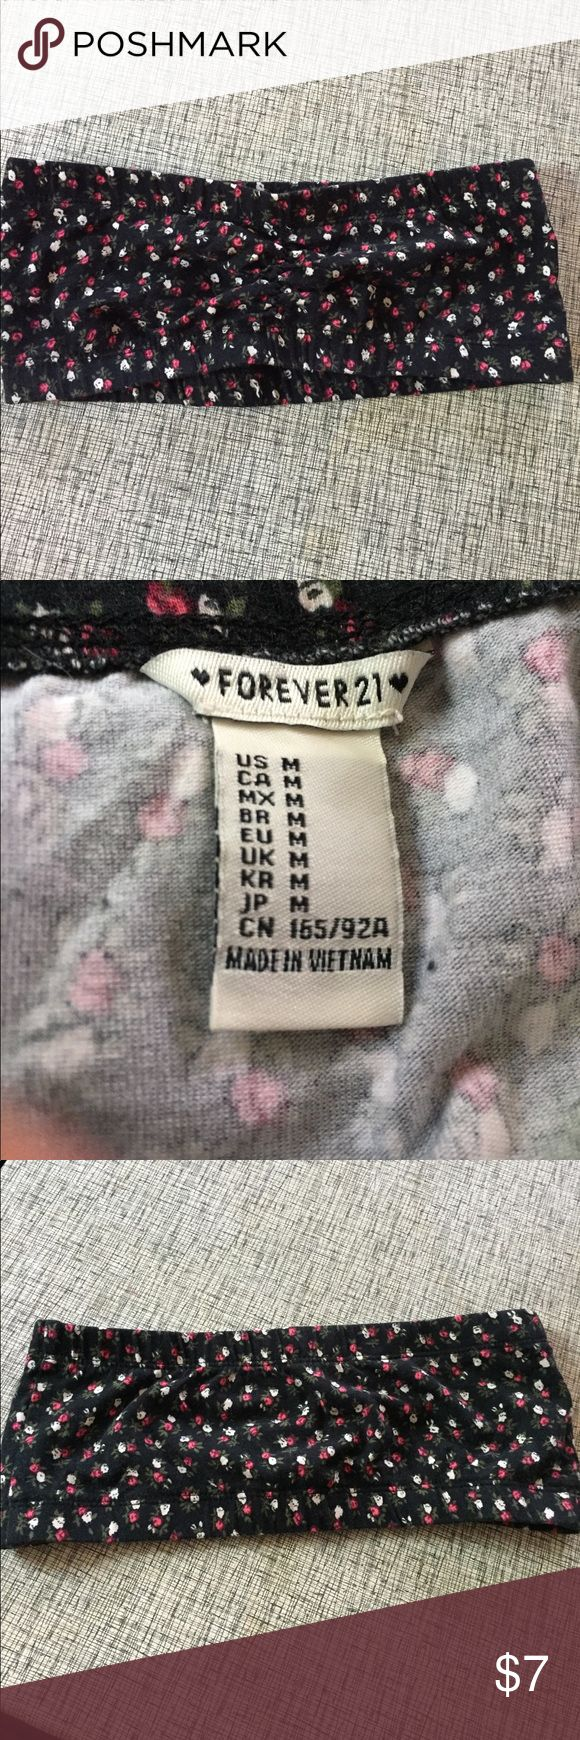 Floral Bandeau top Floral bandeau top. Black. white and pink roses. Never worn. Forever 21 Tops Crop Tops